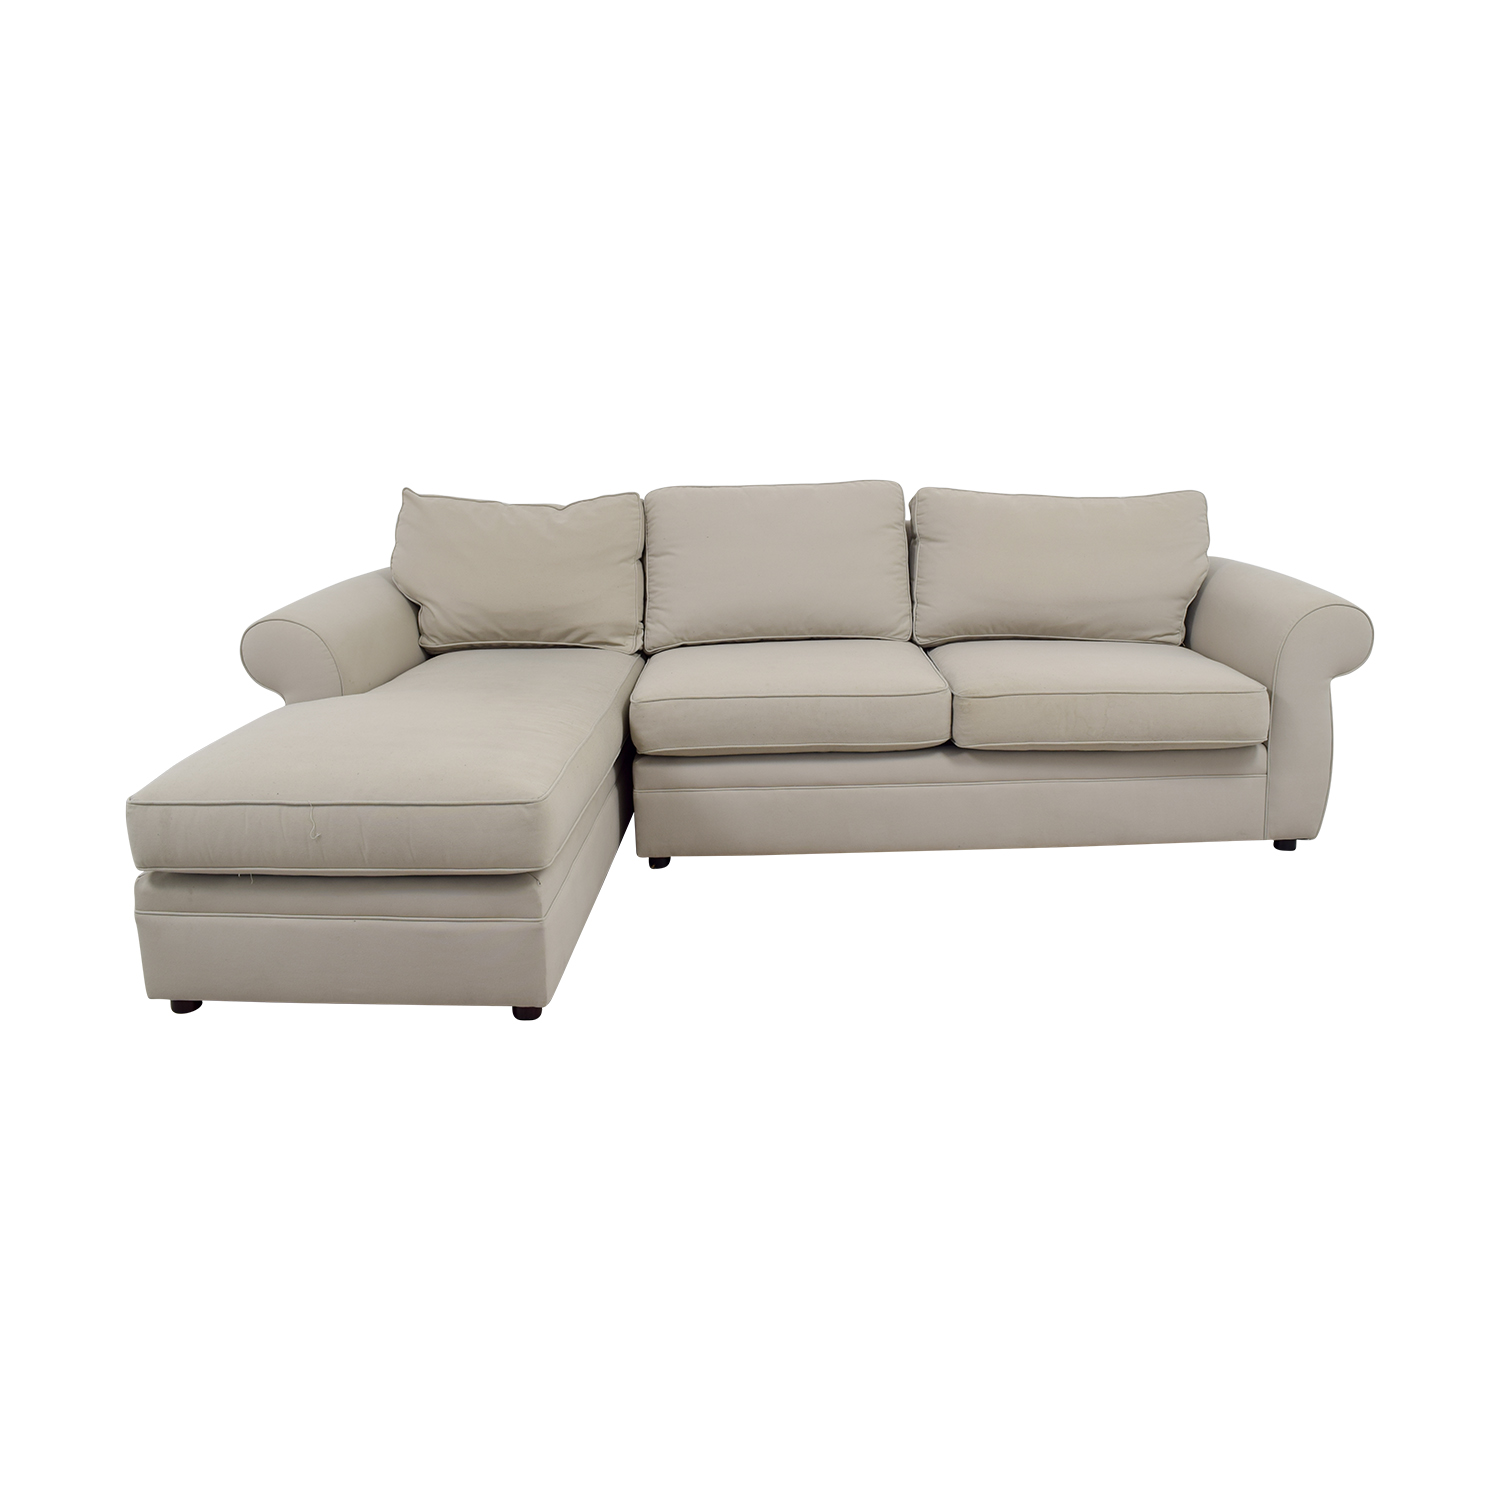 pottery barn chaise sofa sectional restoration hardware leather warranty sectionals used for sale